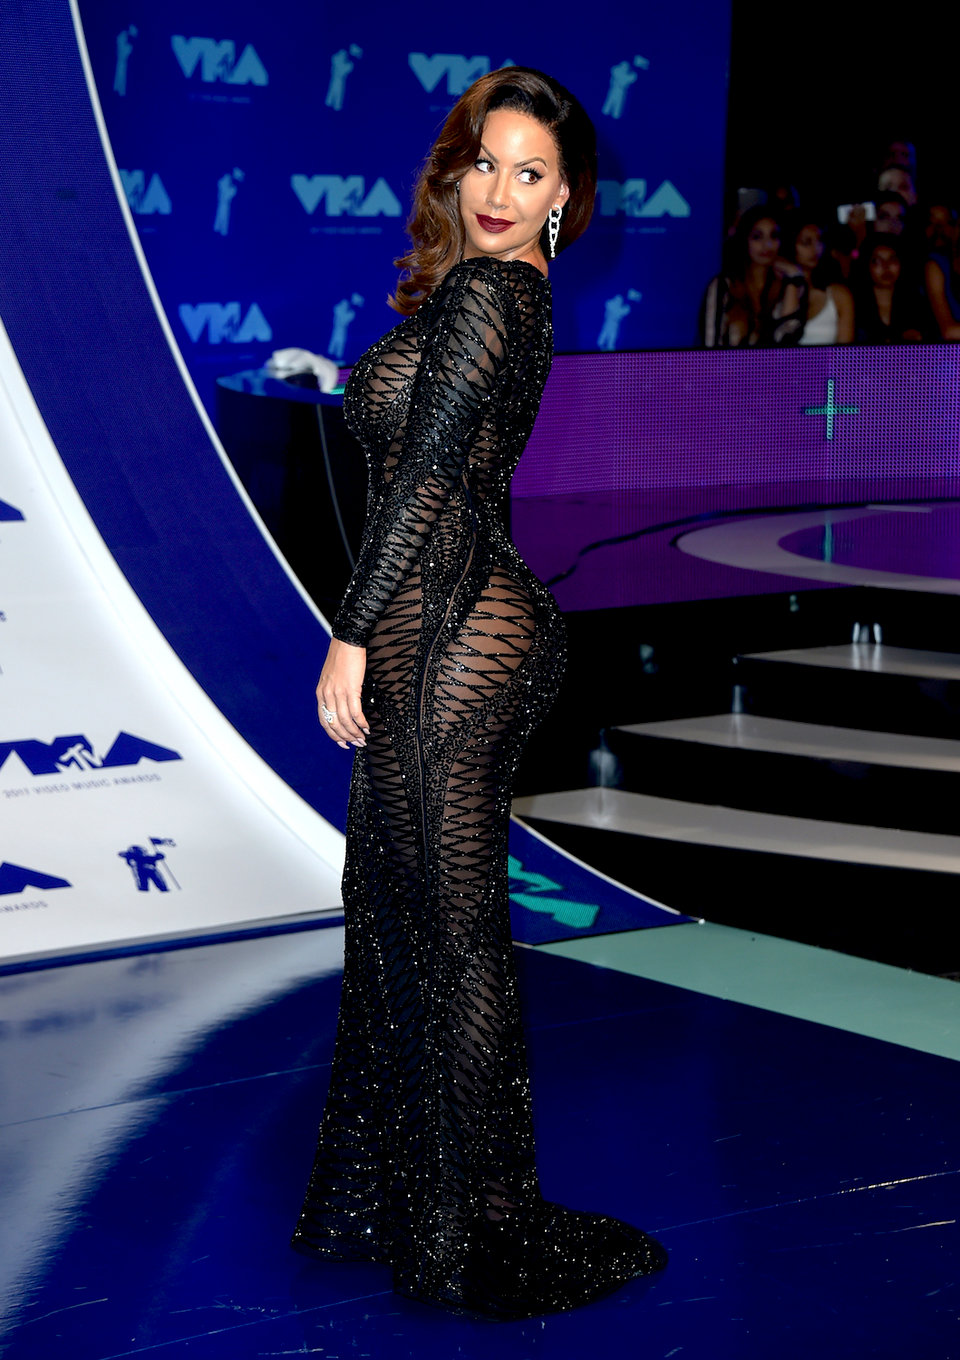 amber rose attended the 2017 vmas in a glamorous floor length dress with an almost entirely sheer fishnet style pattern